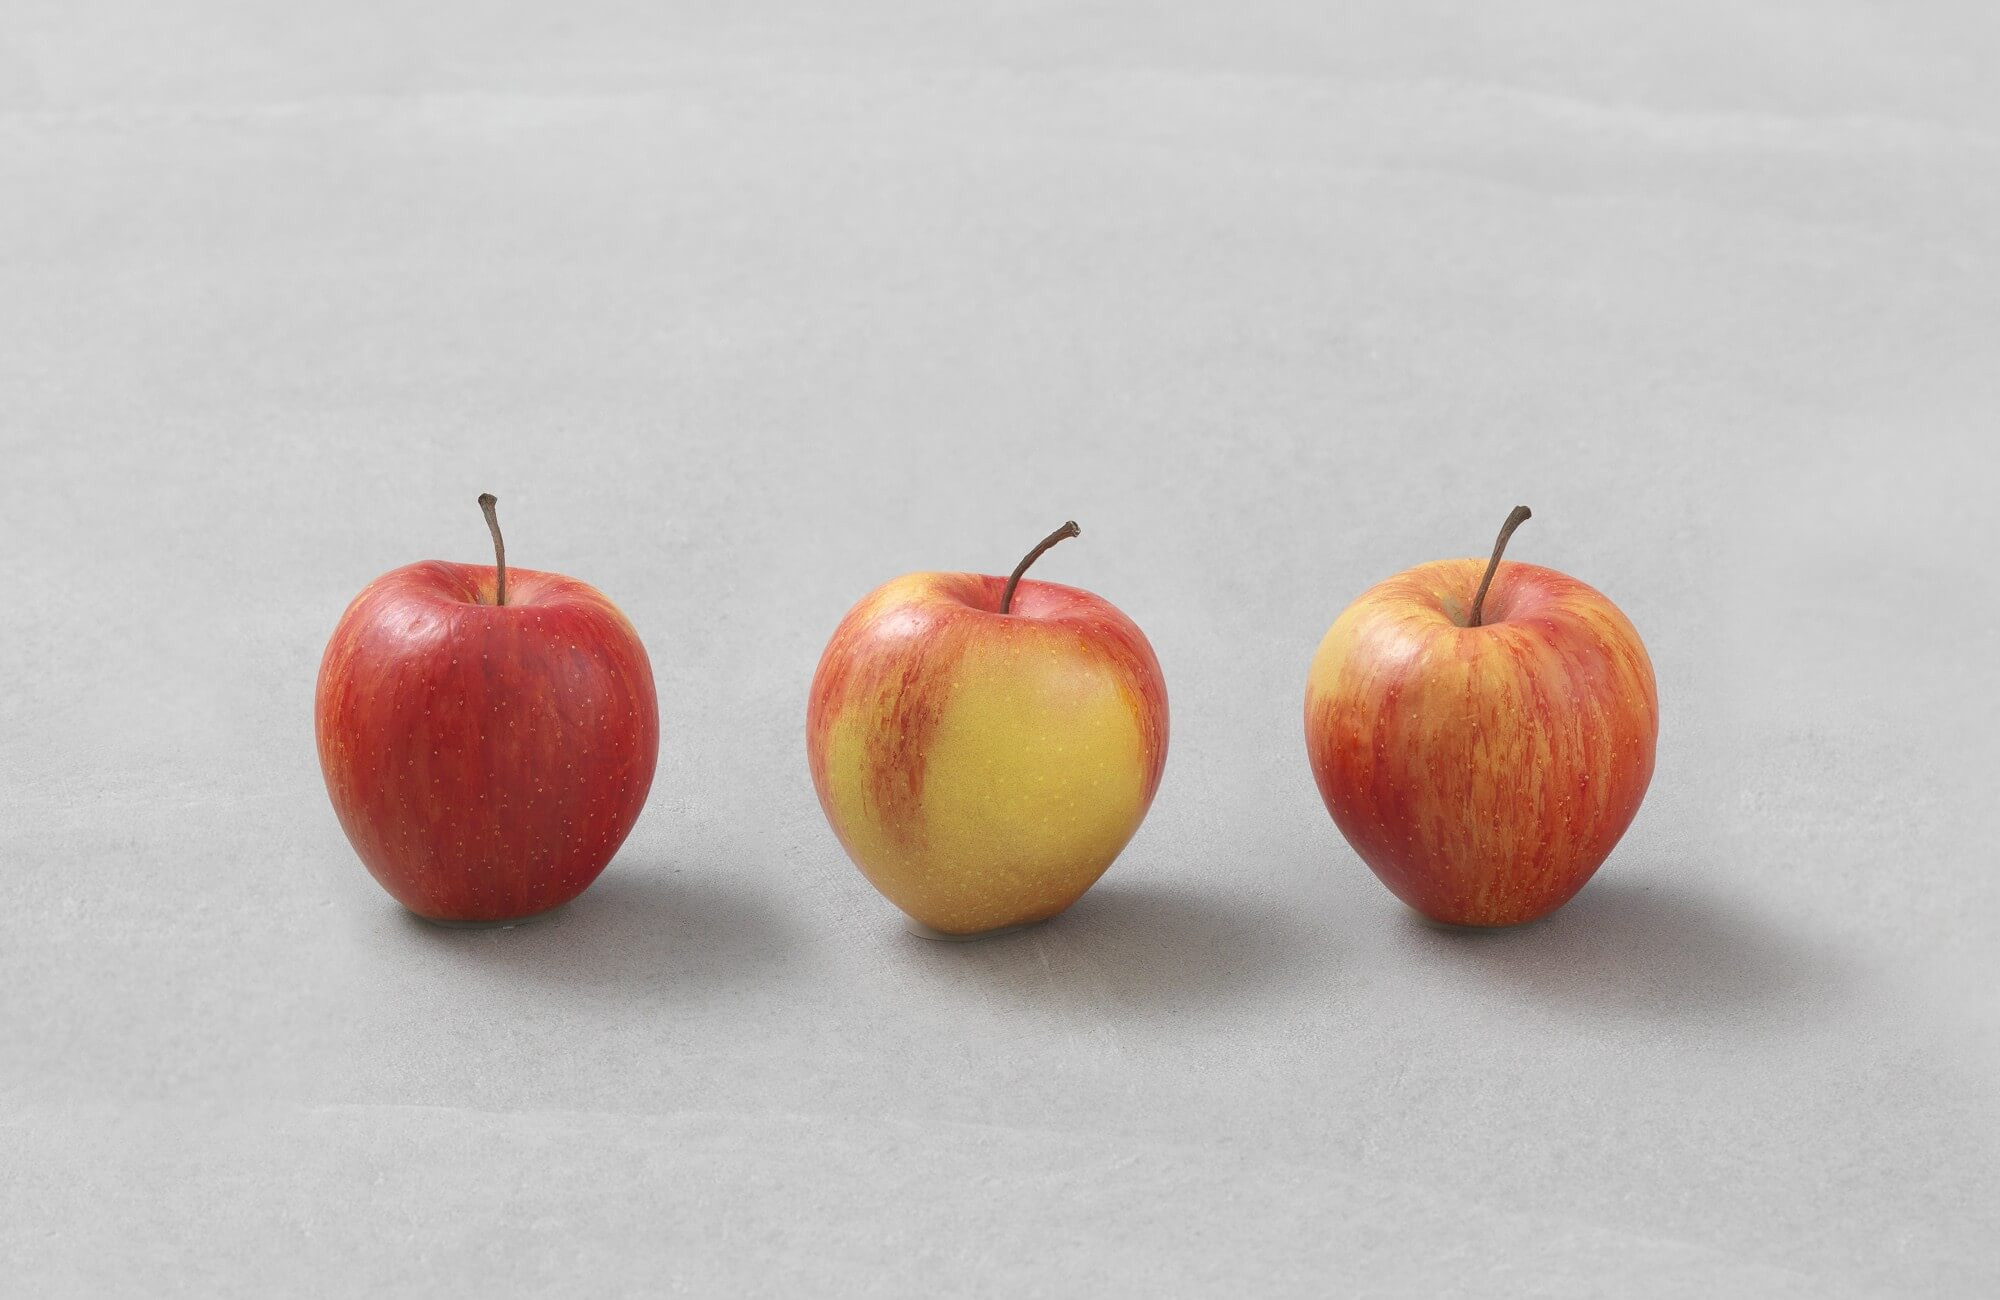 still.life (three apples) | UGO RONDINONE